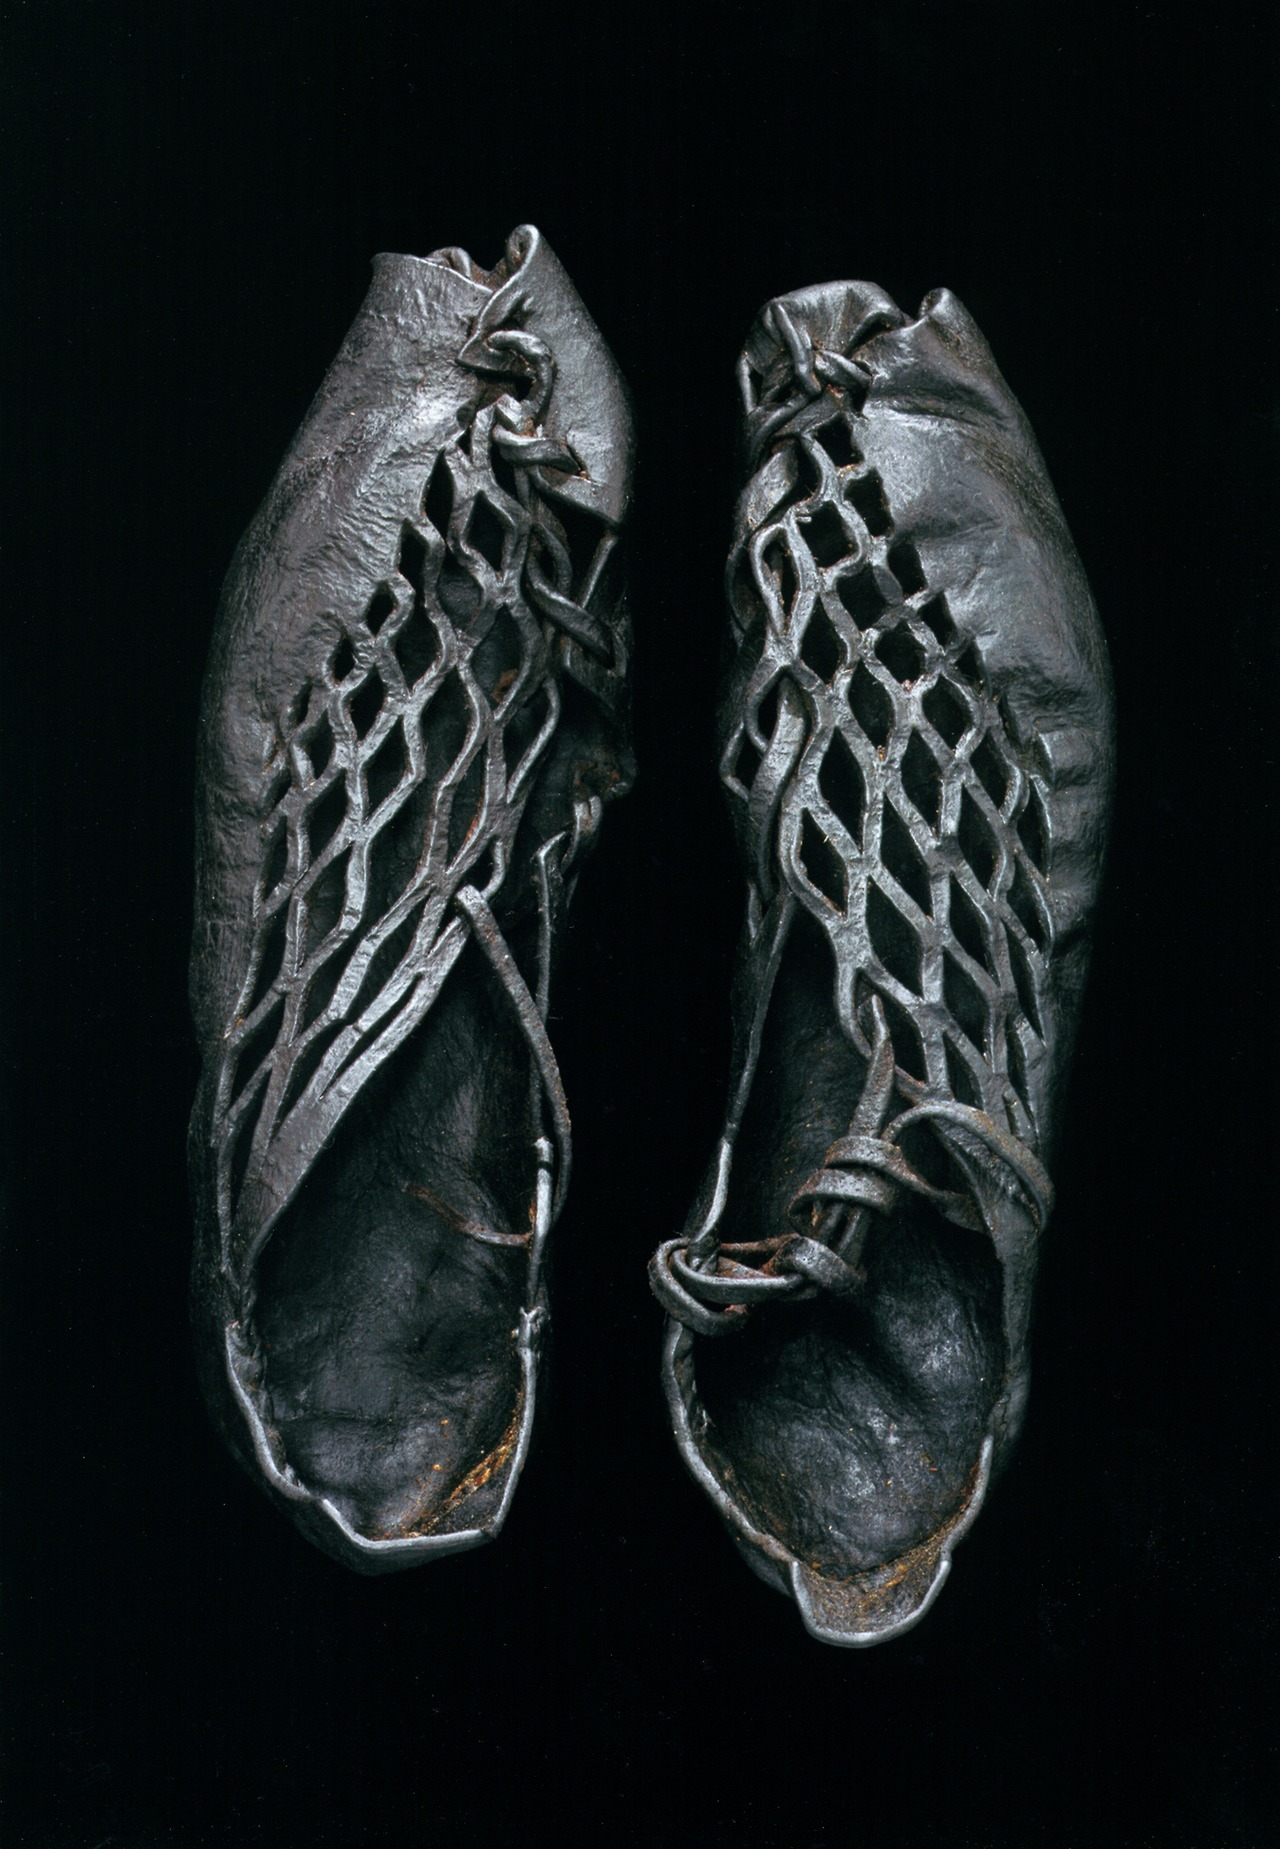 theshinyboogie:  Iron Age shoes (ca. 400 BCE to 400 CE) found on body found in European bog Photo by Robert Clark, September 2007 National Geographic